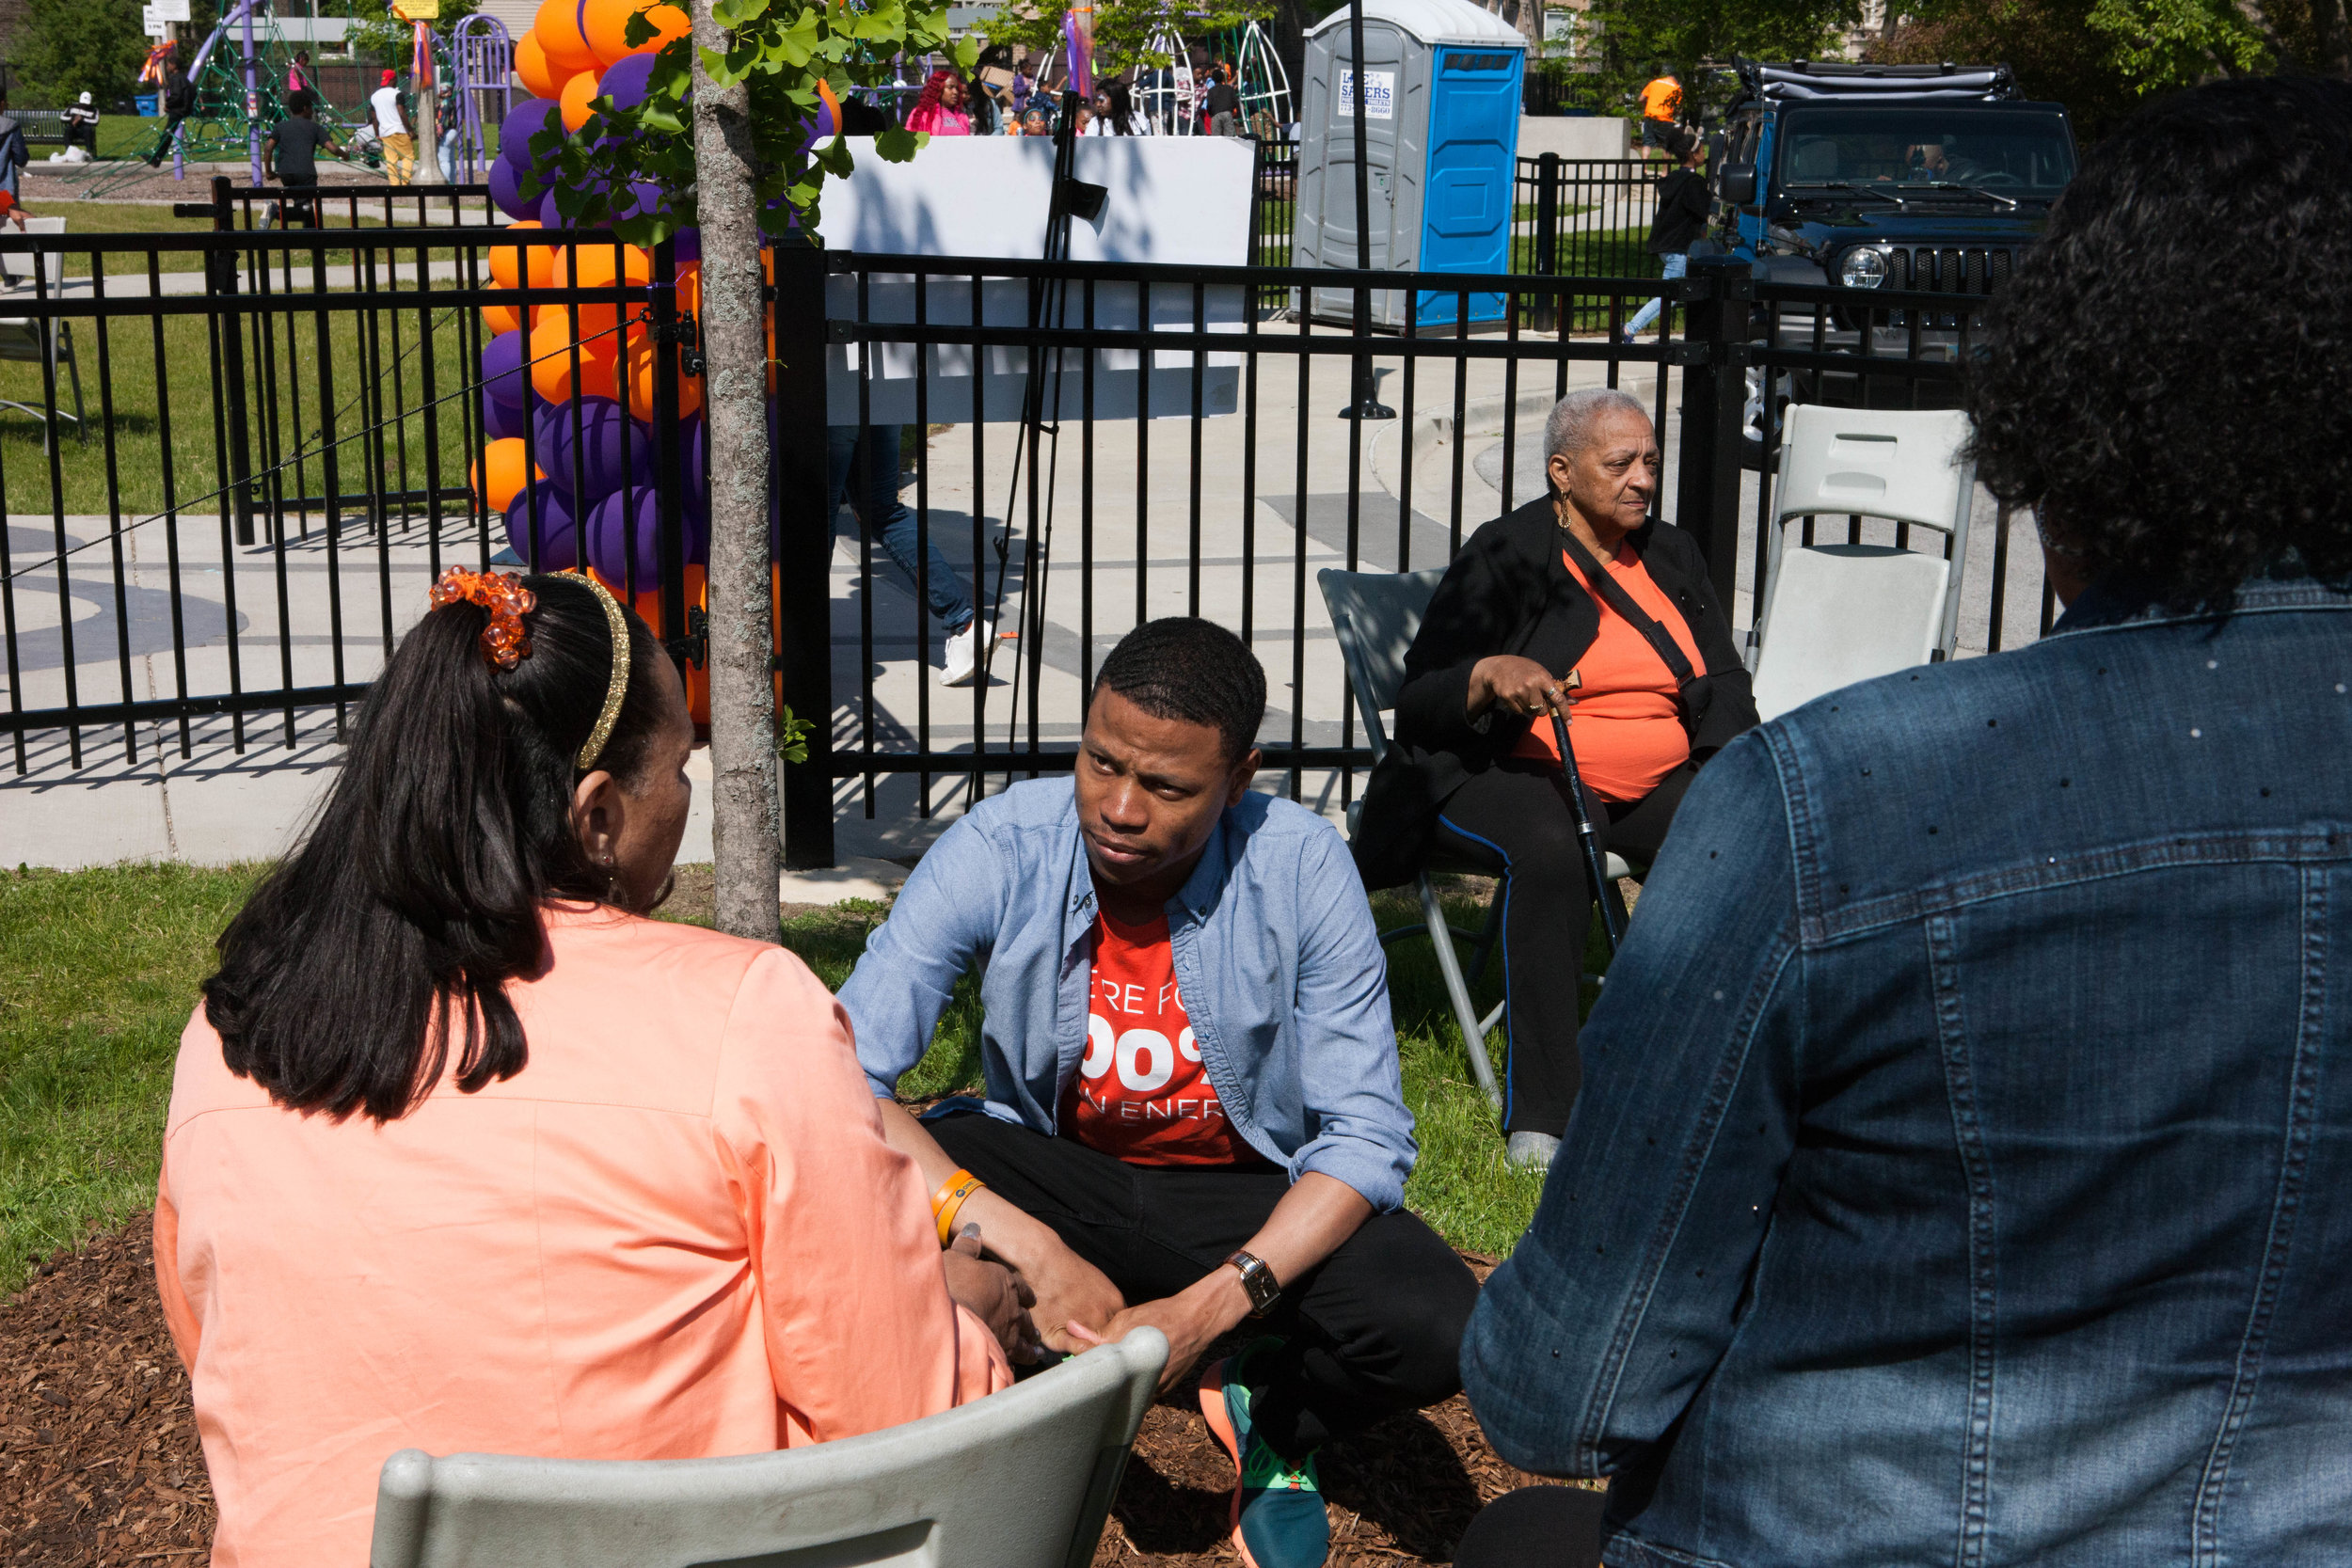 Robert crouches and listens to a woman's concerns at the Wear Orange Peace Party.